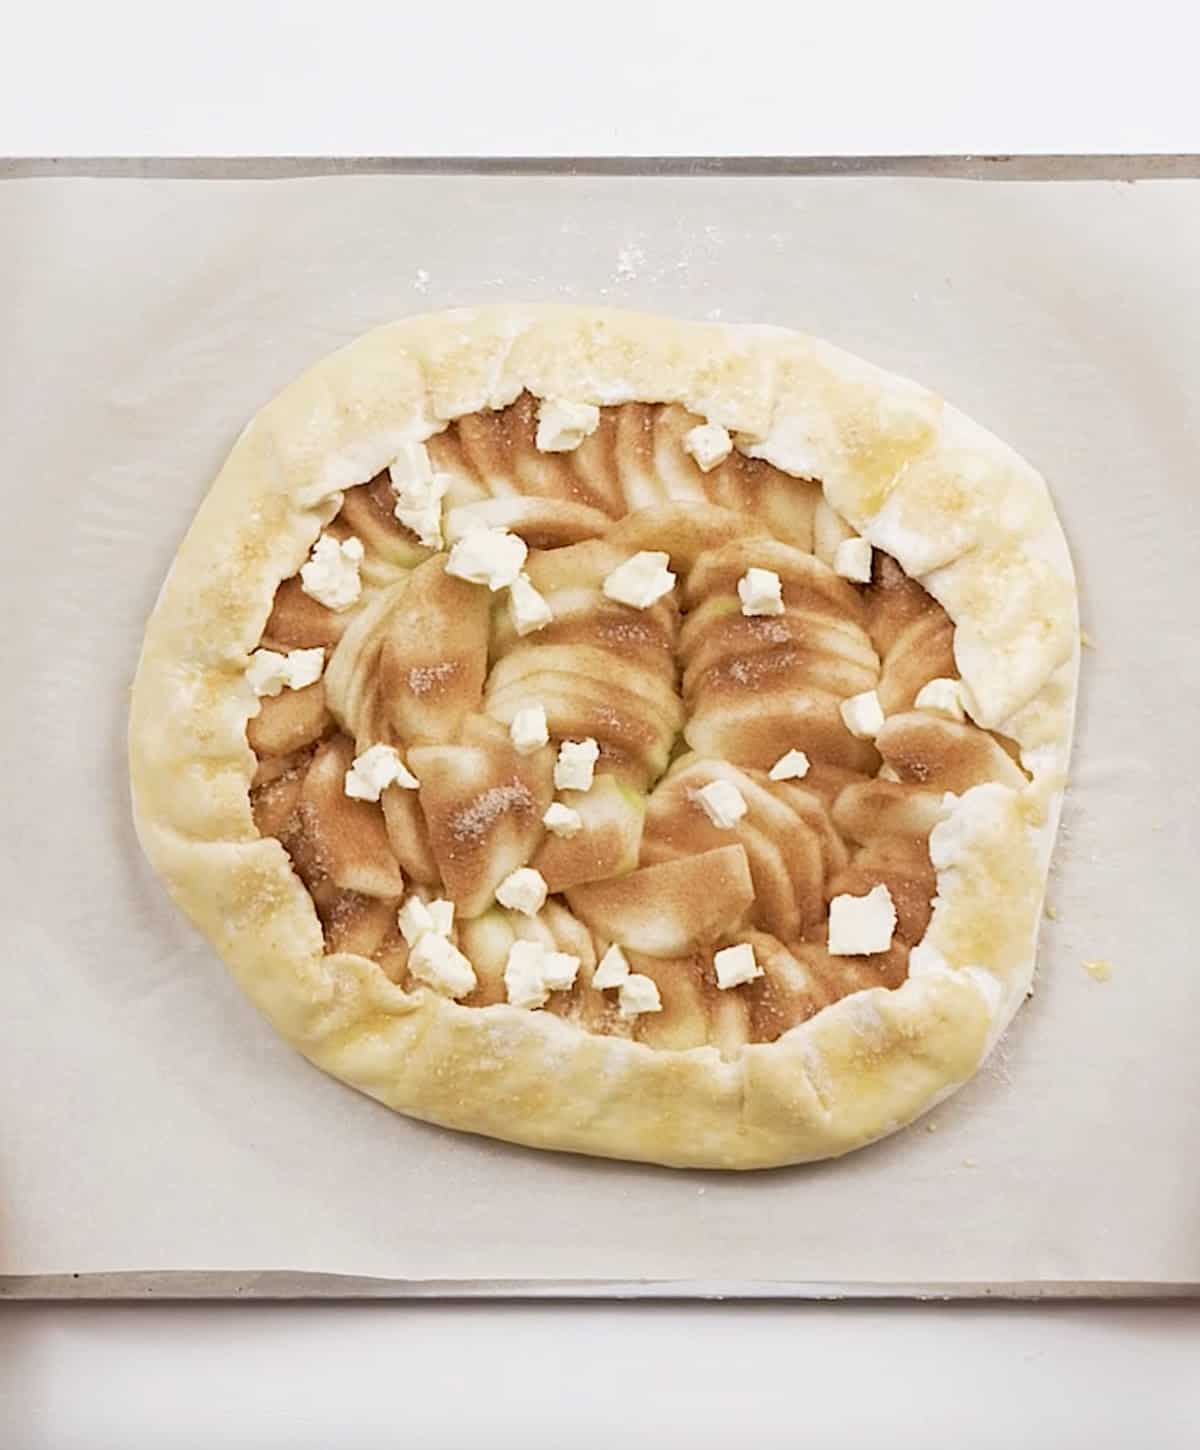 Whole unbaked apple galette on parchment paper